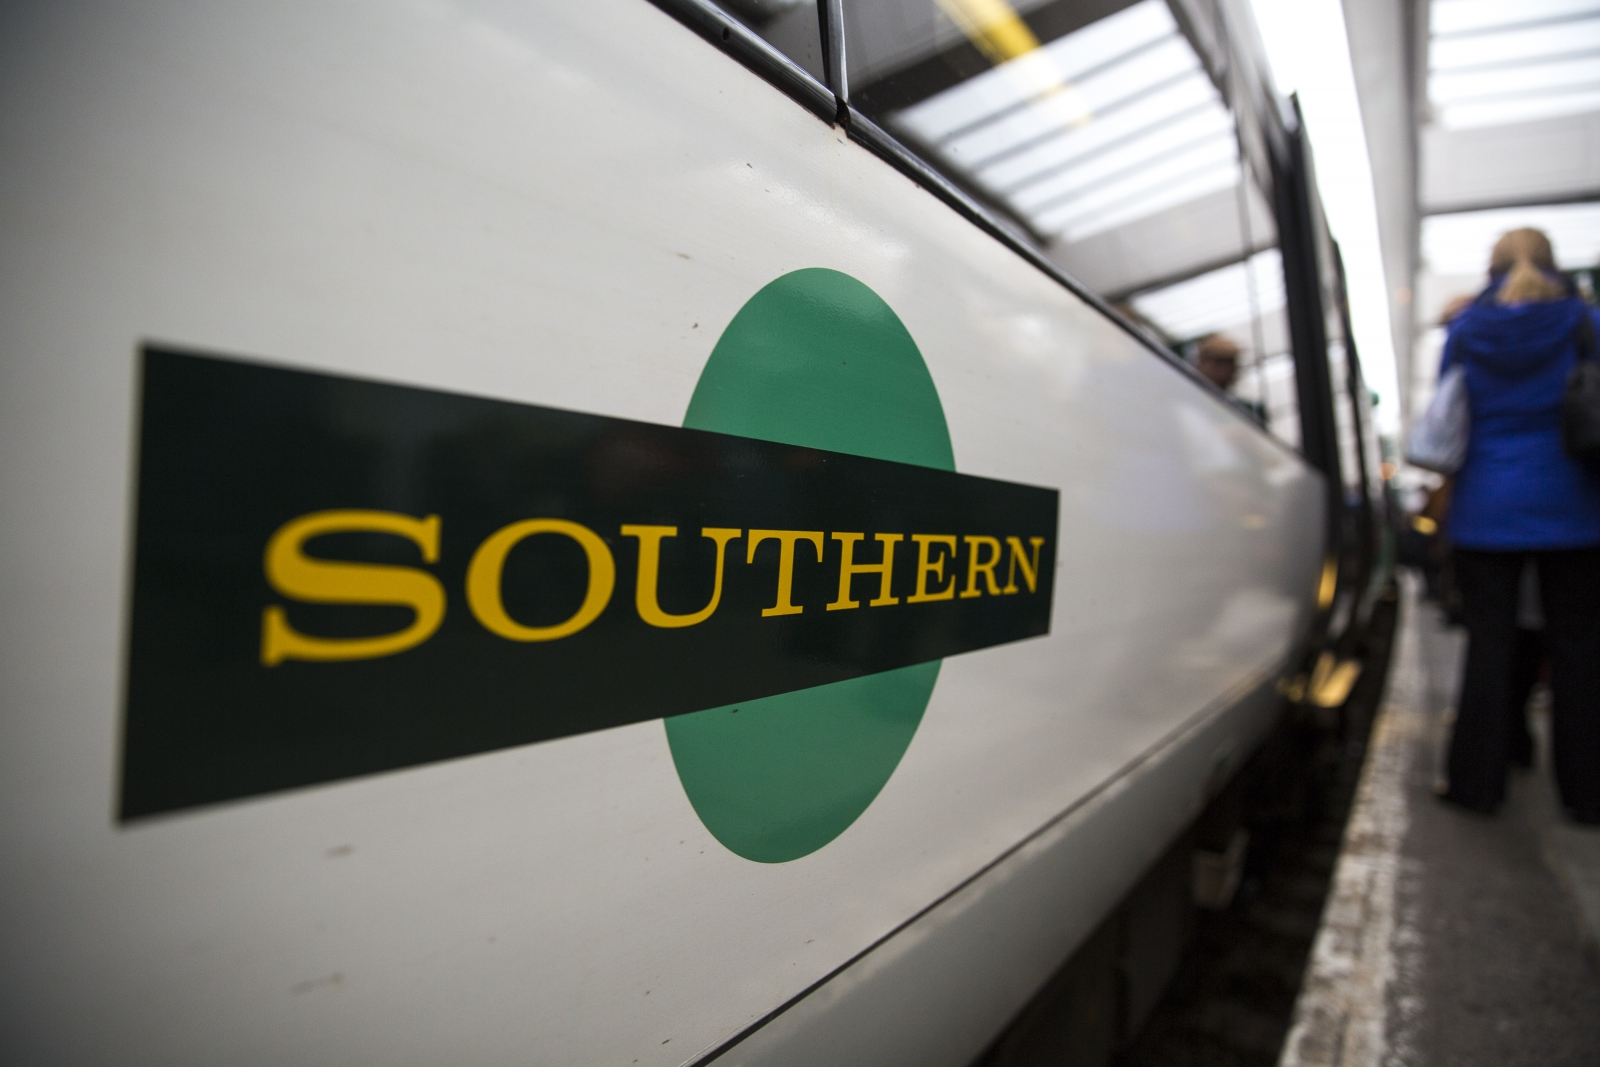 Southern Rail owner fined £13.4m over delays